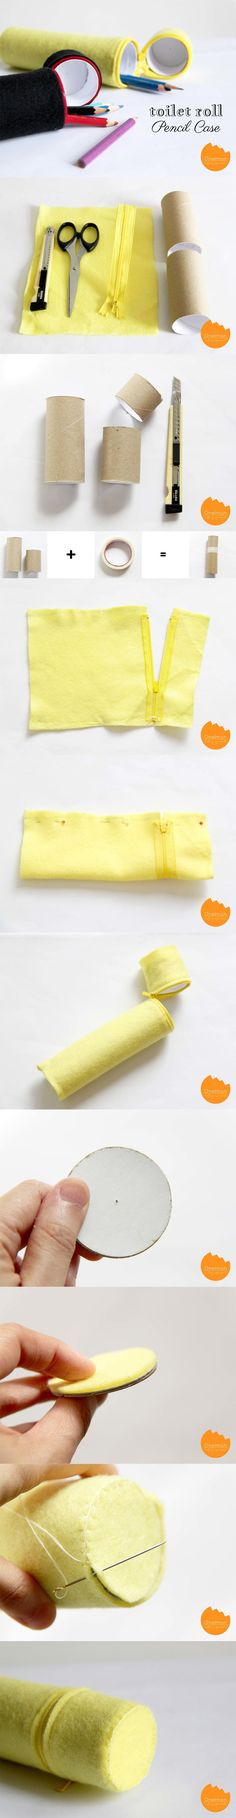 DIY Paper roll pencil case